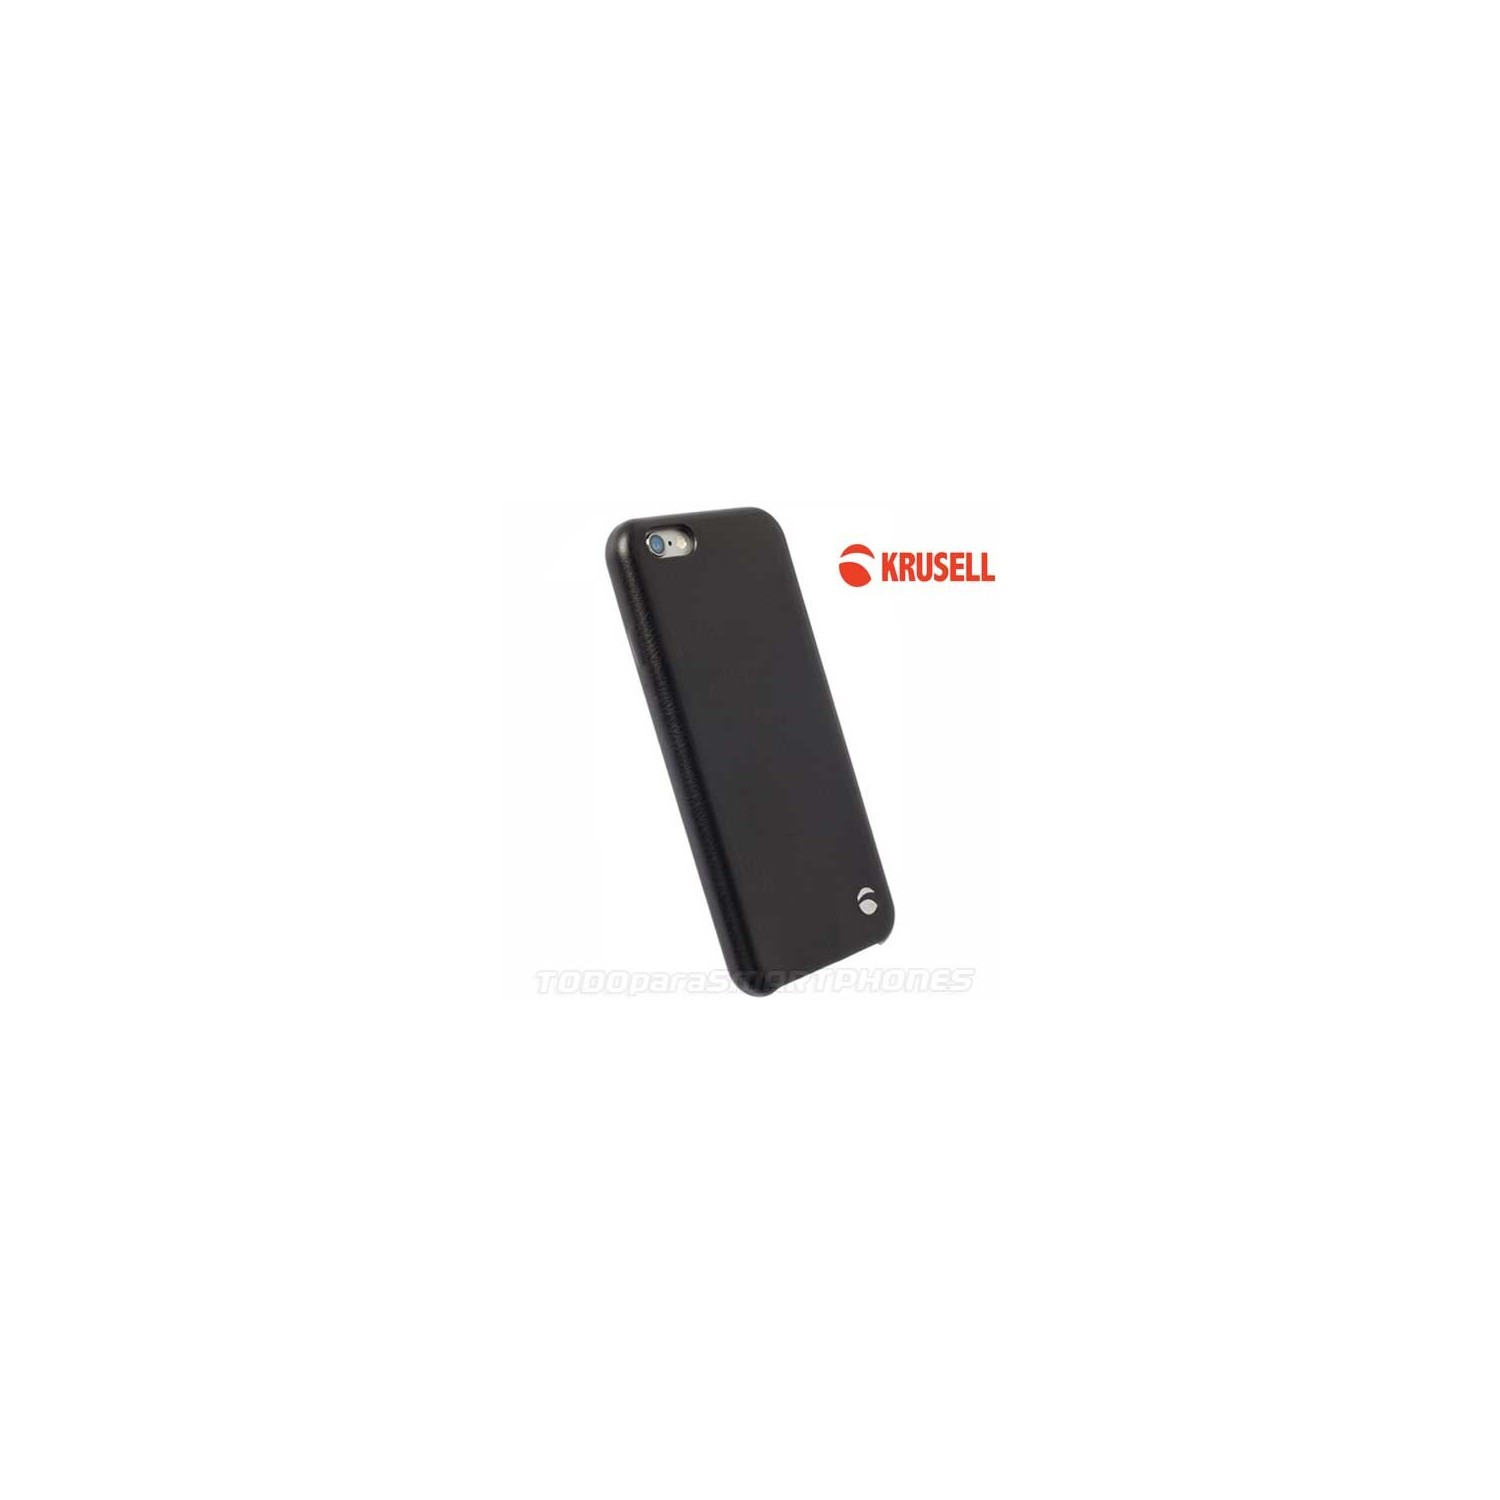 Case - Krusell Timra Cover for iPhone 6s Black